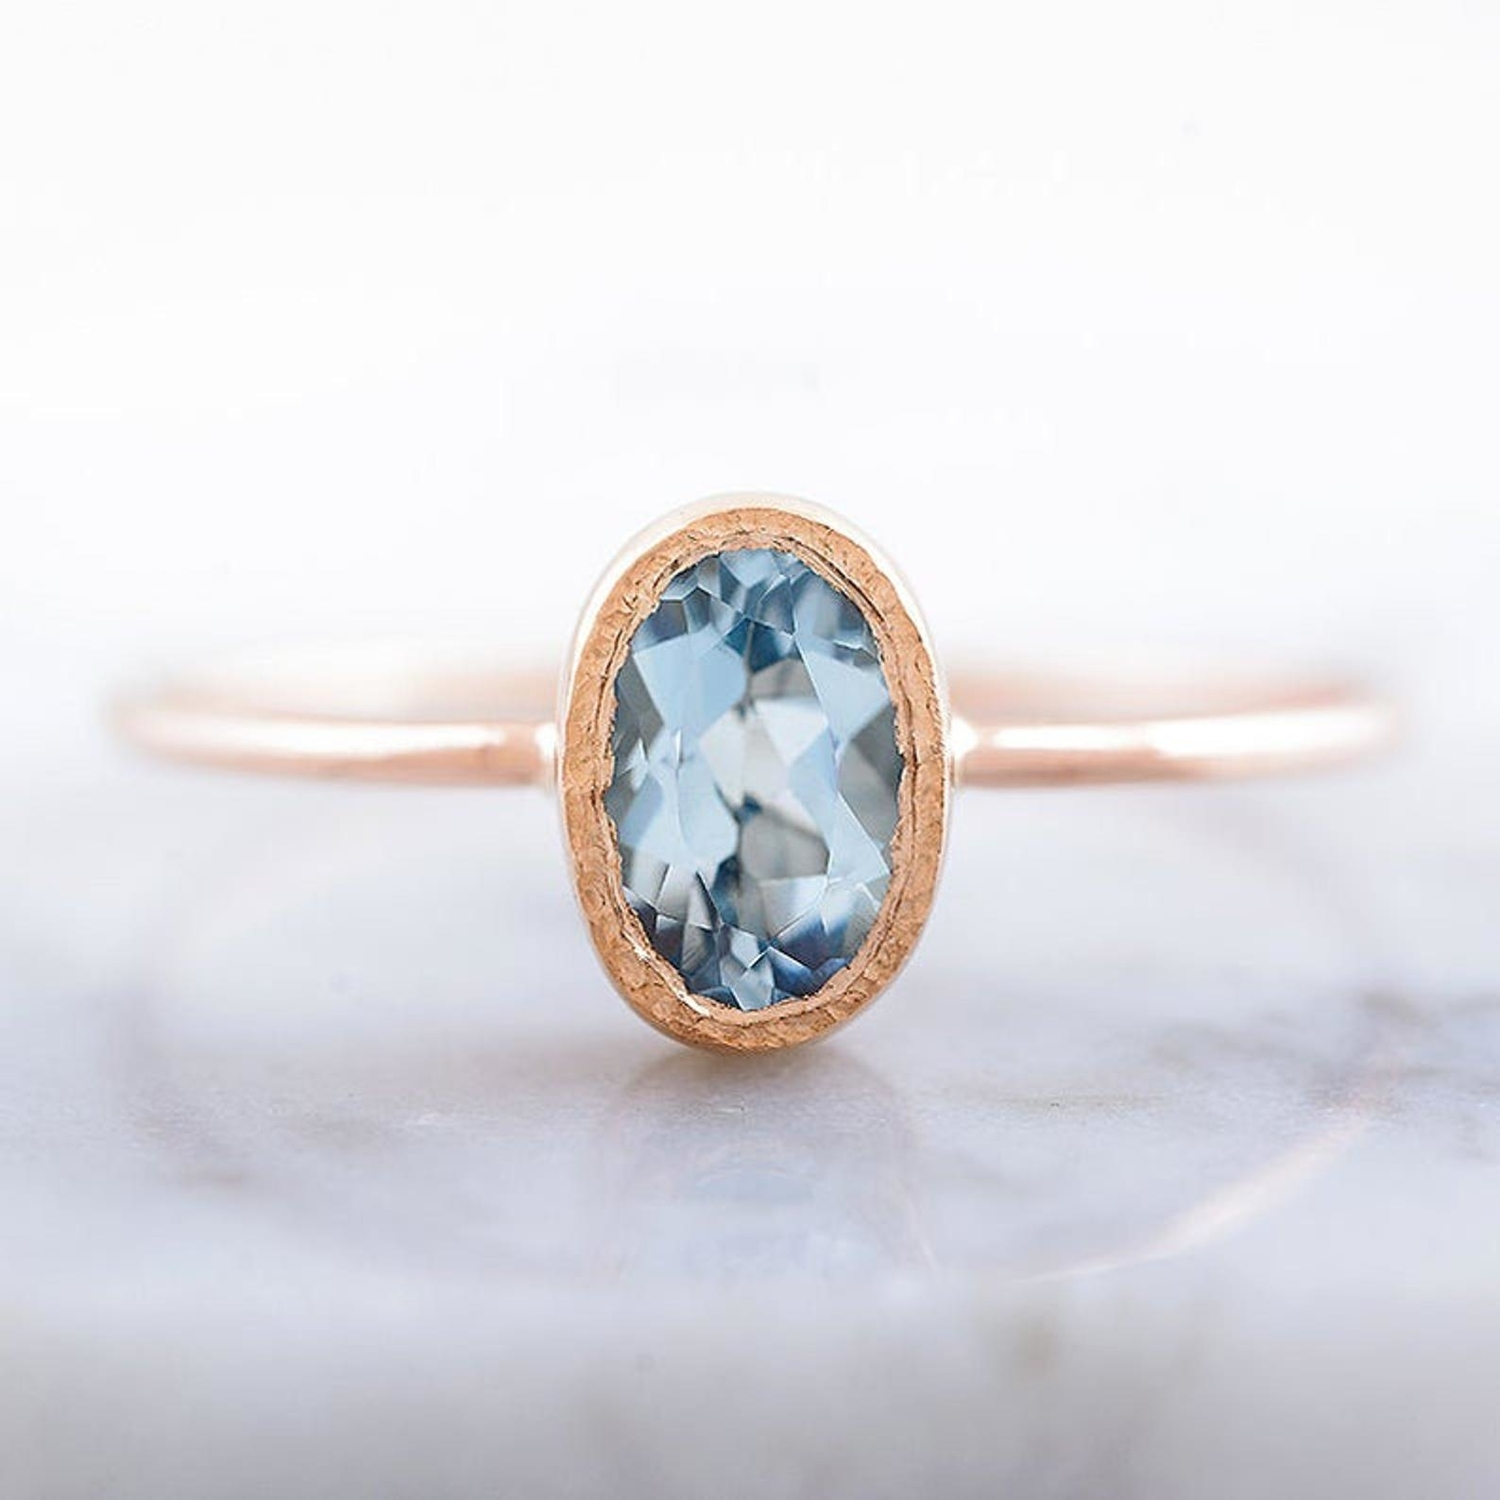 Blue engagement ring from Etsy